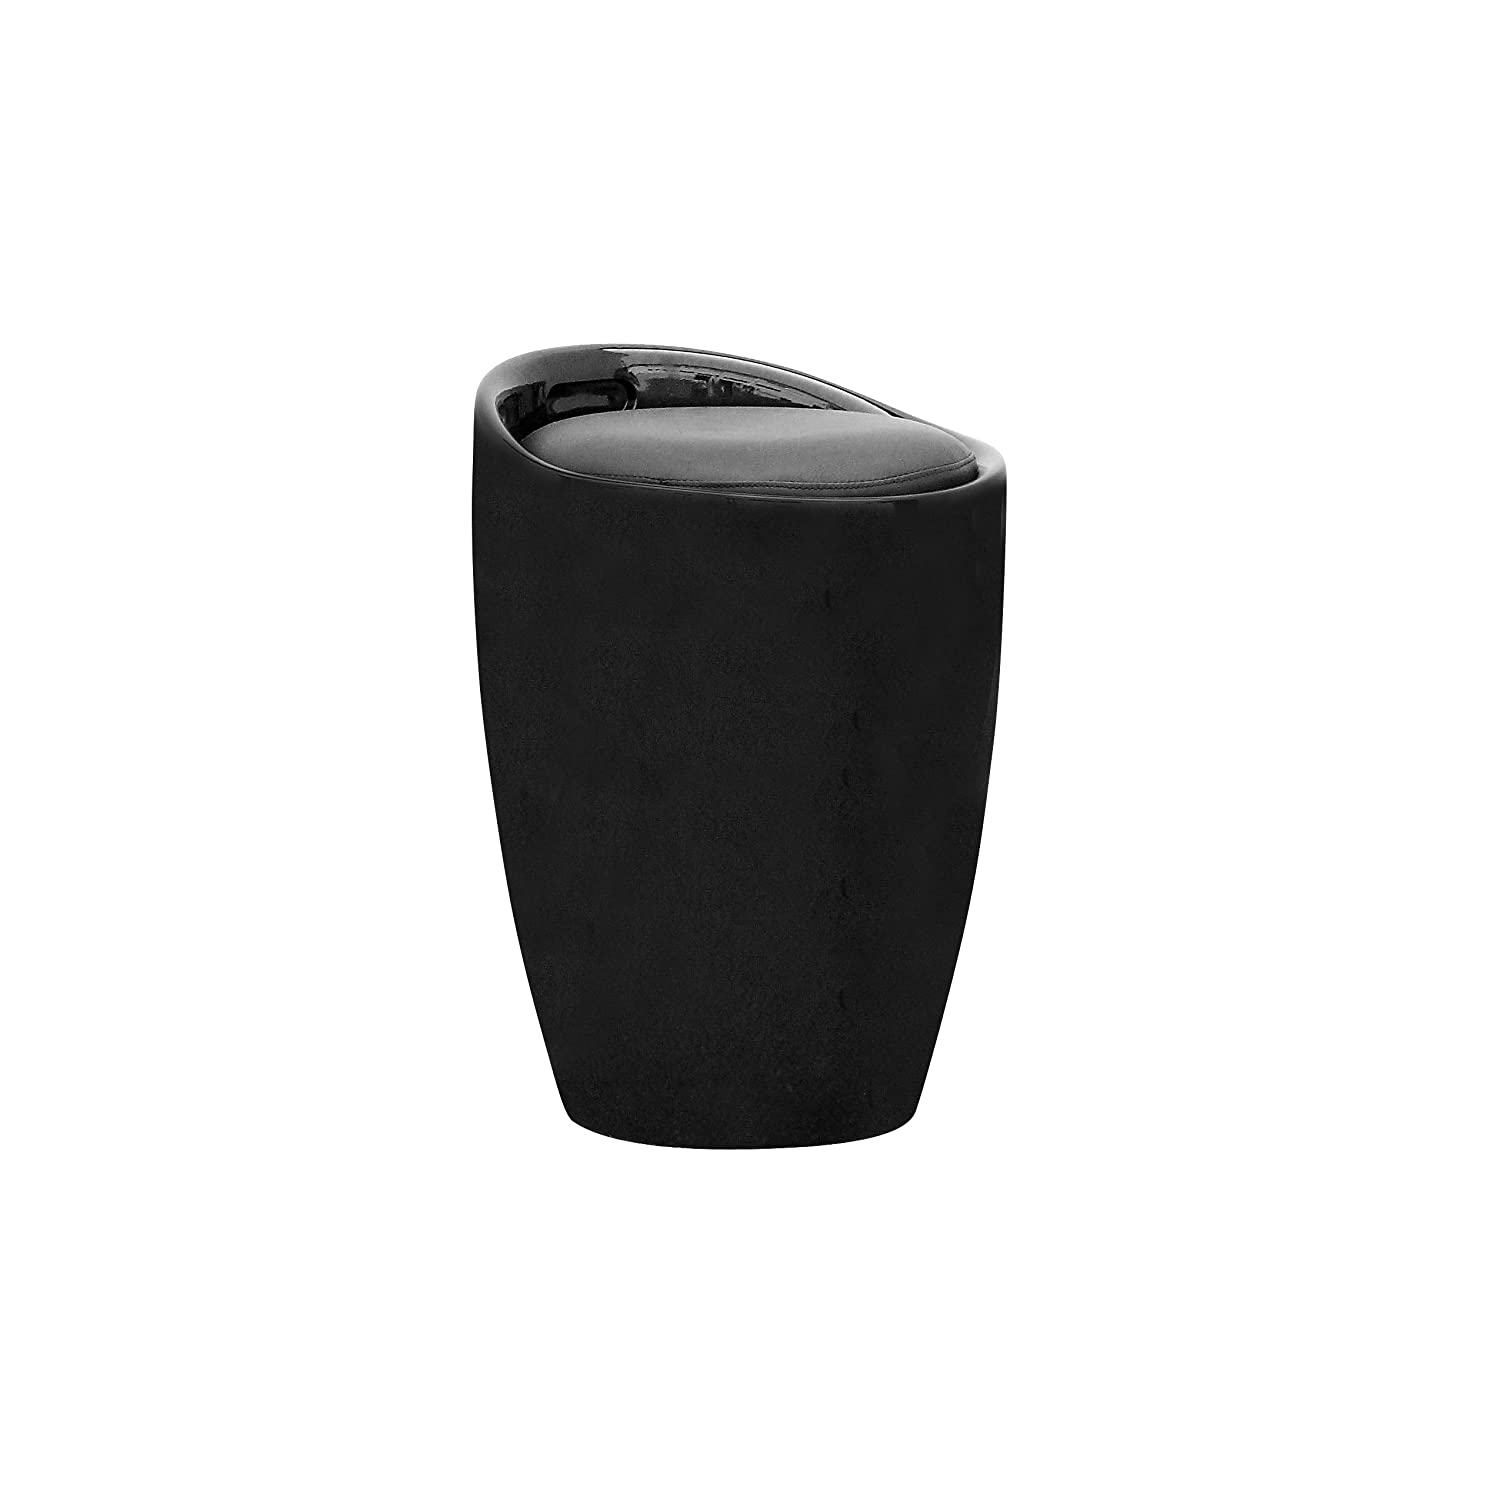 CorLiving DPV-600-S Storage Stool in Black Leatherette Corporate Images